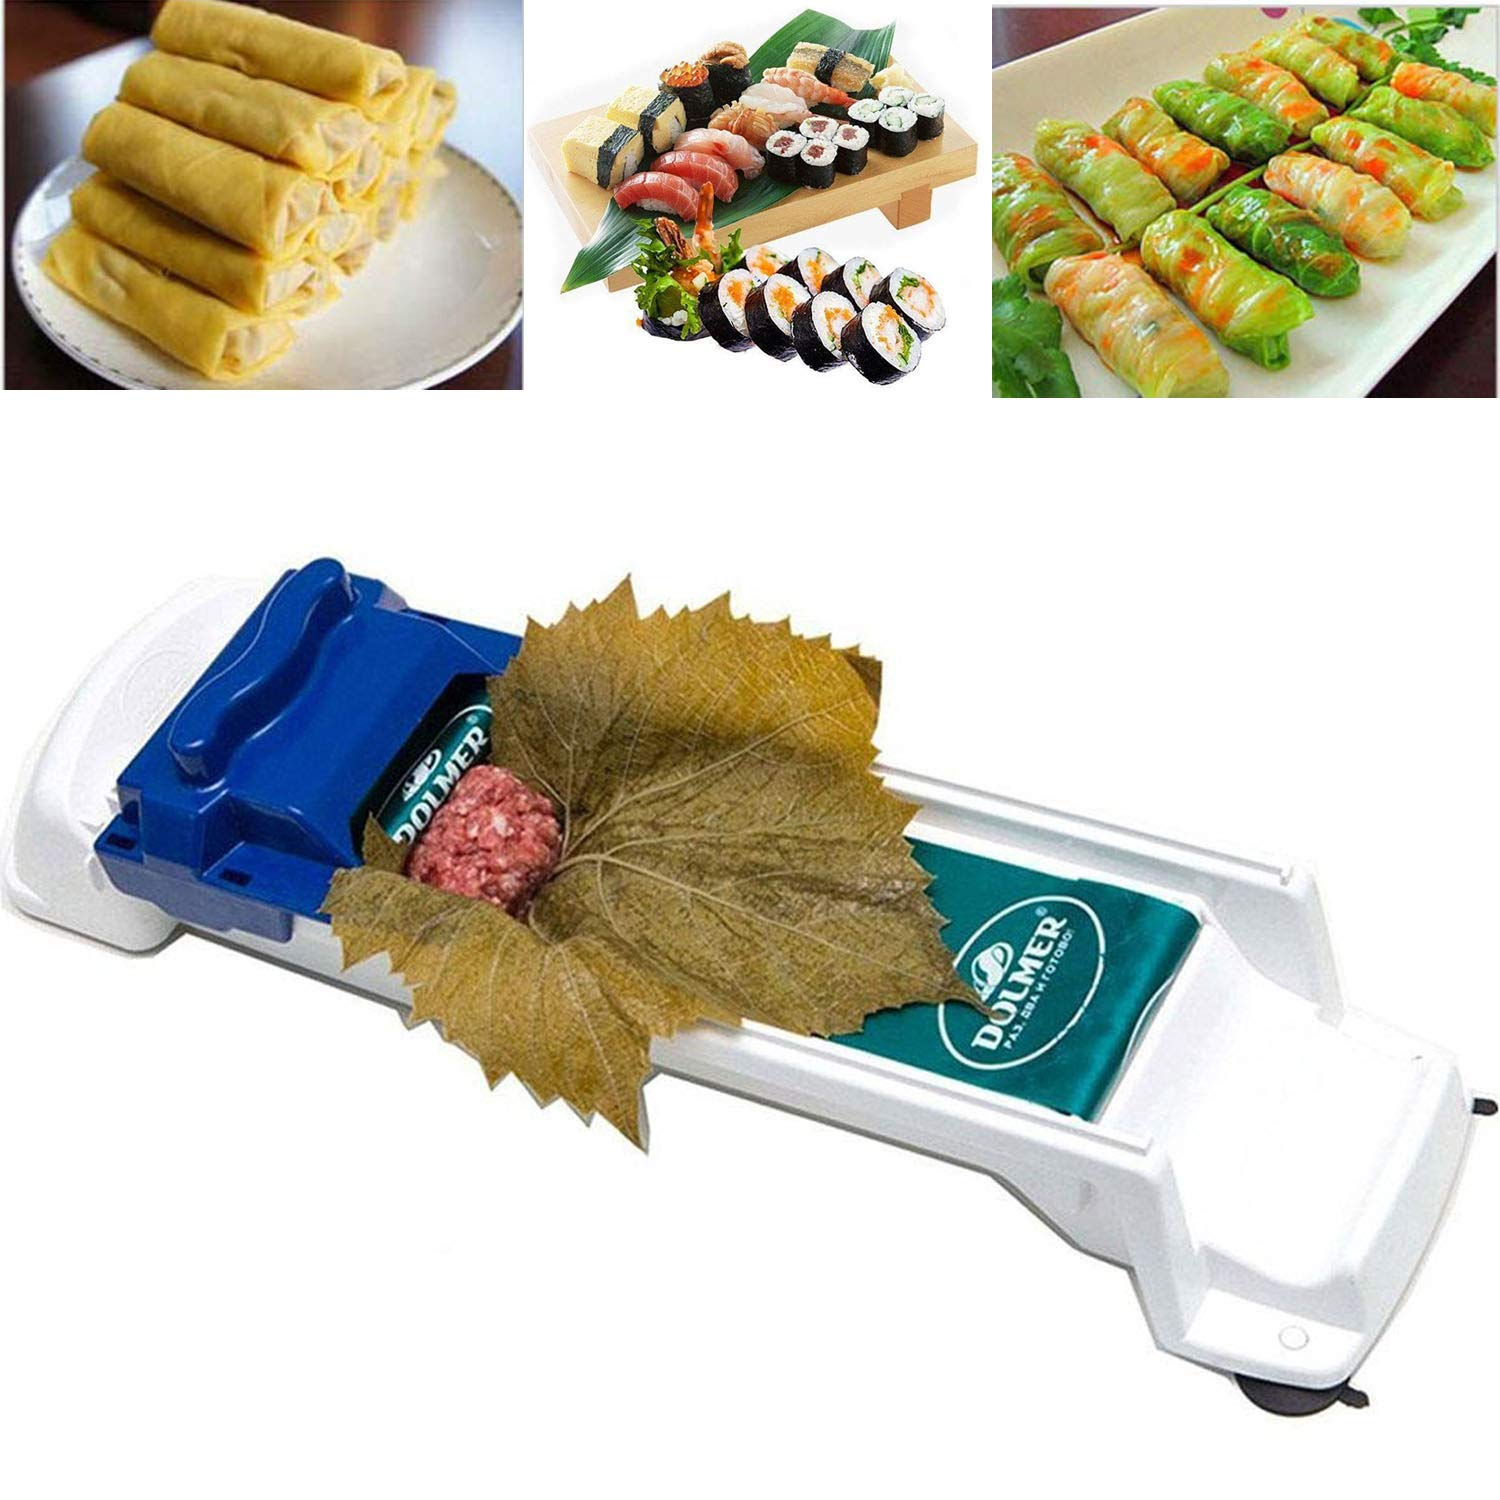 AUOKER Dolma Roller, Sushi Roller Meat Rolling Tool for Beginners and Children Stuffed Grape & Cabbage Leaves, Rolling Meat and Vegetable - Kitchen DIY Sushi Maker Meat Sarma Rolling Tool Machine by AUOKER